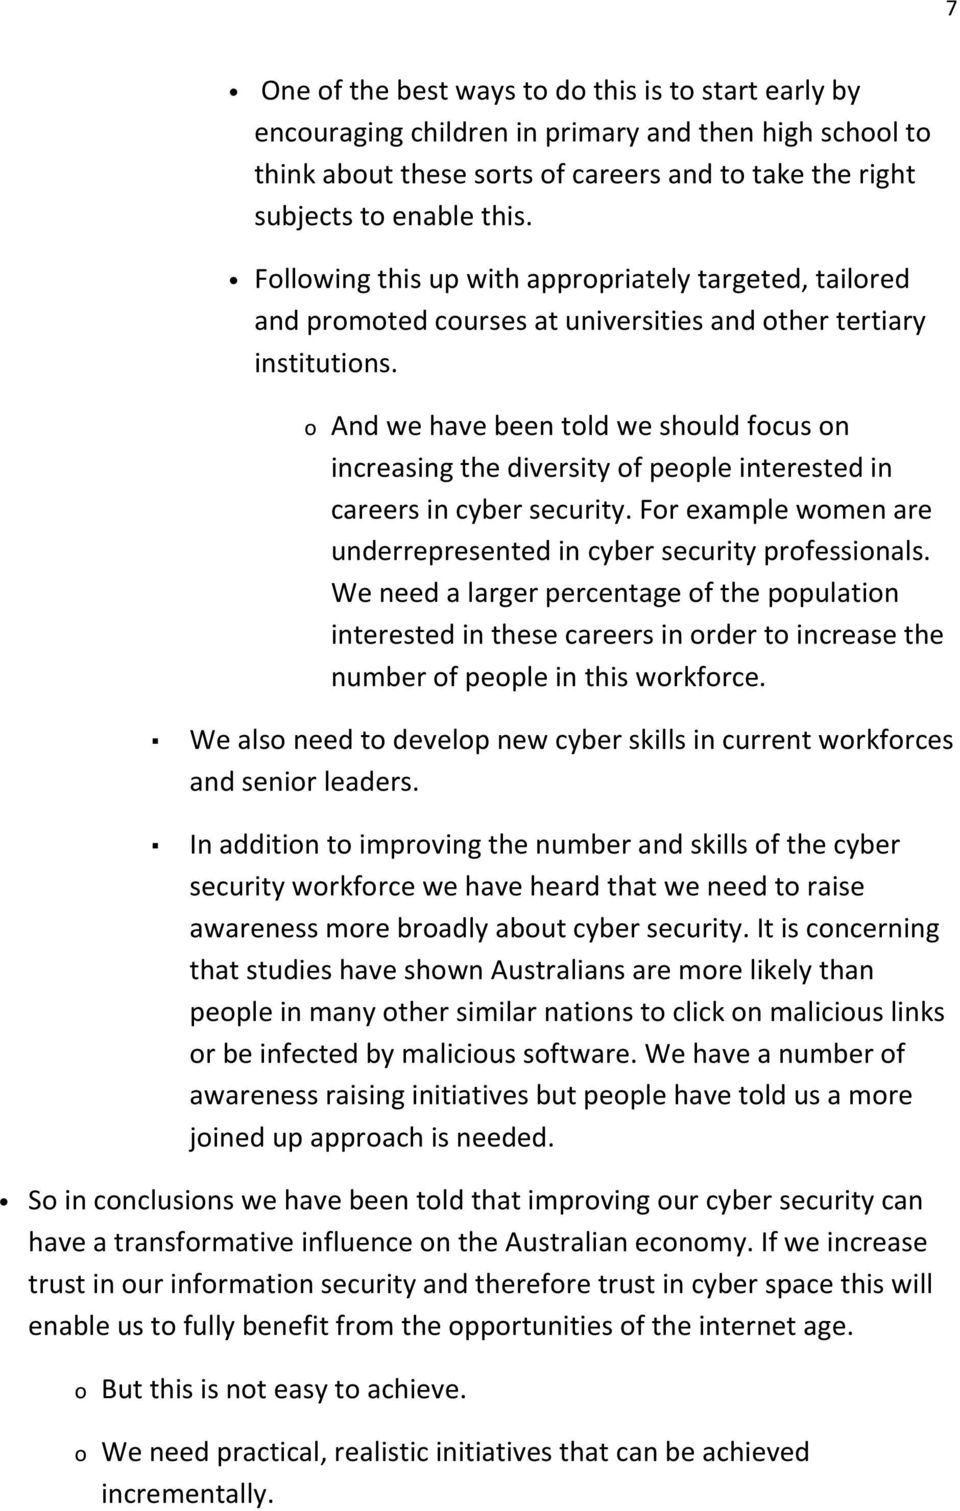 o And we have been told we should focus on increasing the diversity of people interested in careers in cyber security. For example women are underrepresented in cyber security professionals.